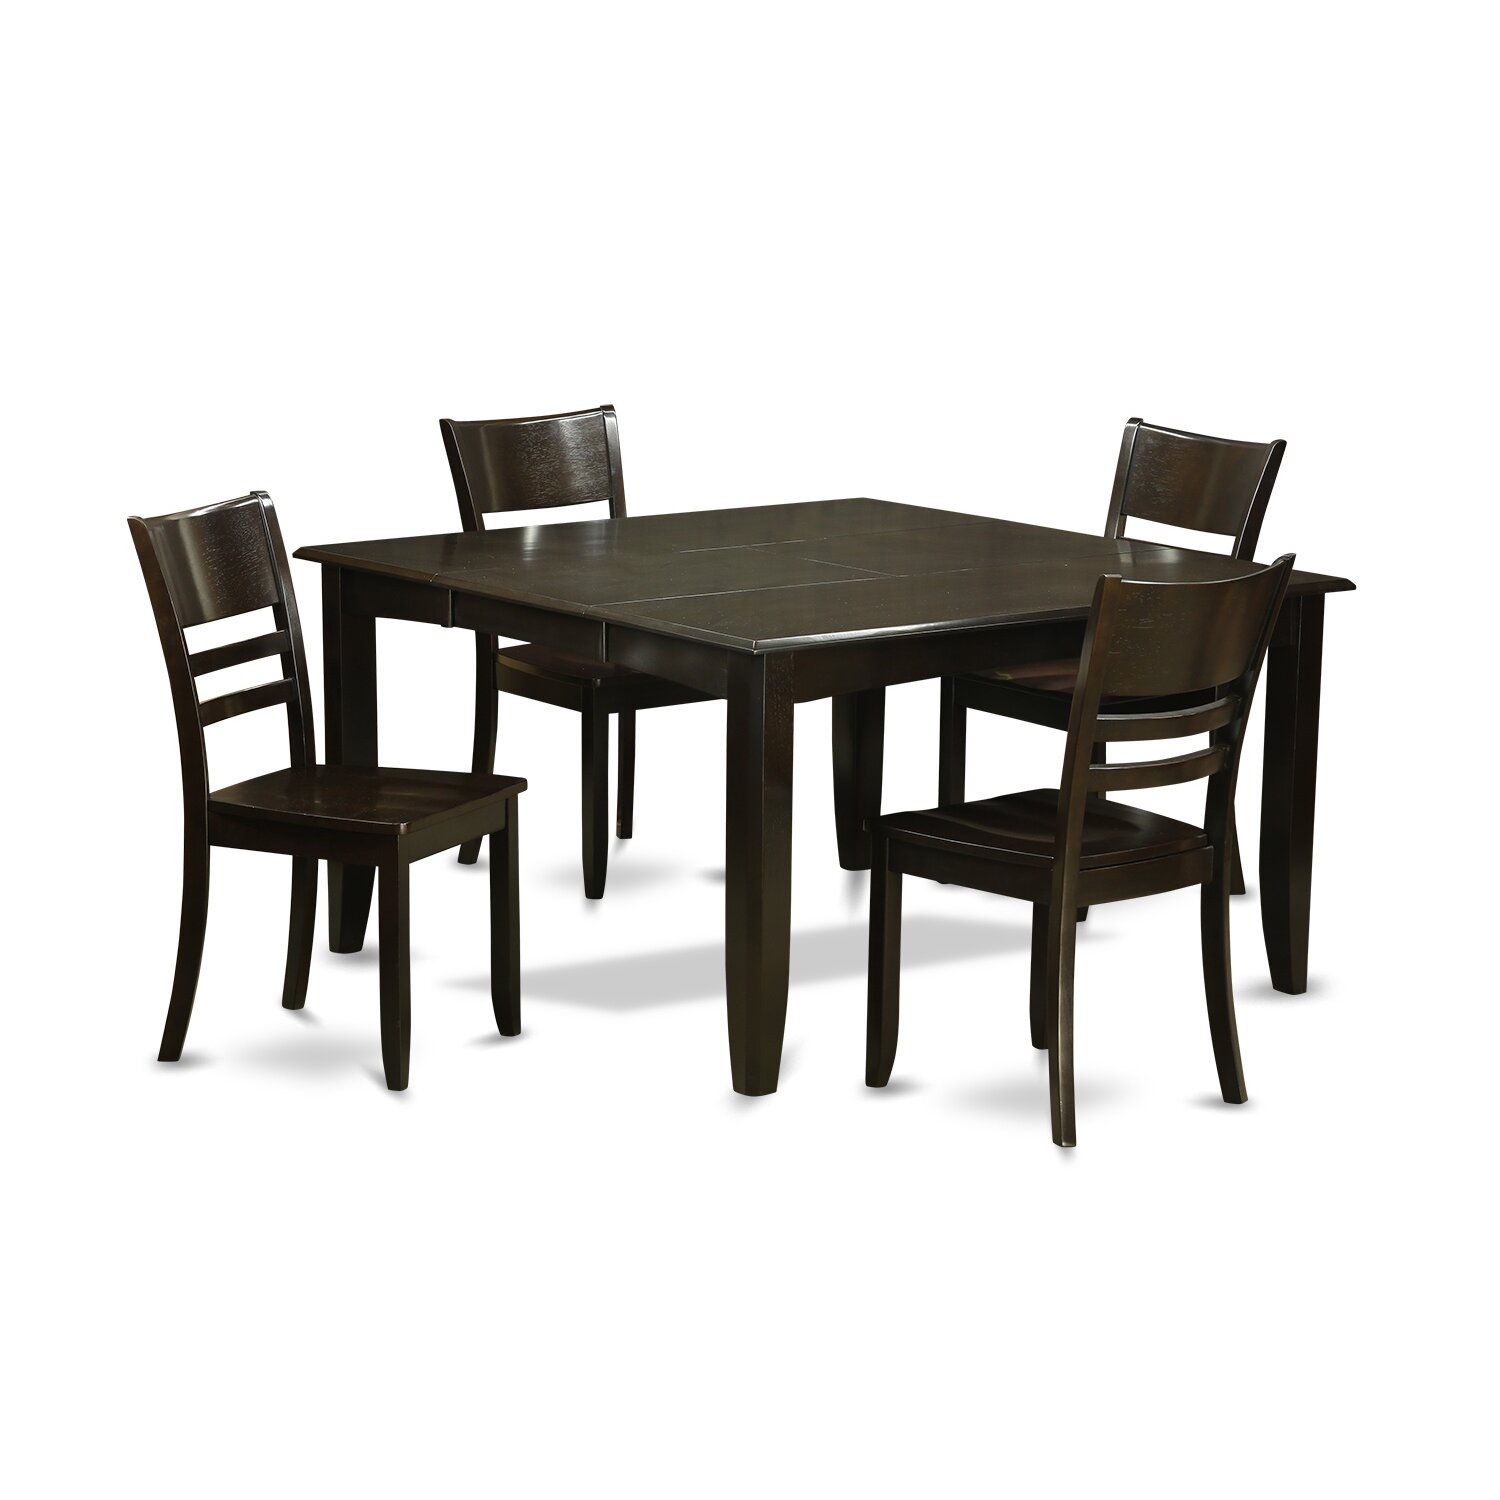 Wooden importers parfait 5 piece dining set wayfair for Kitchenette sets furniture